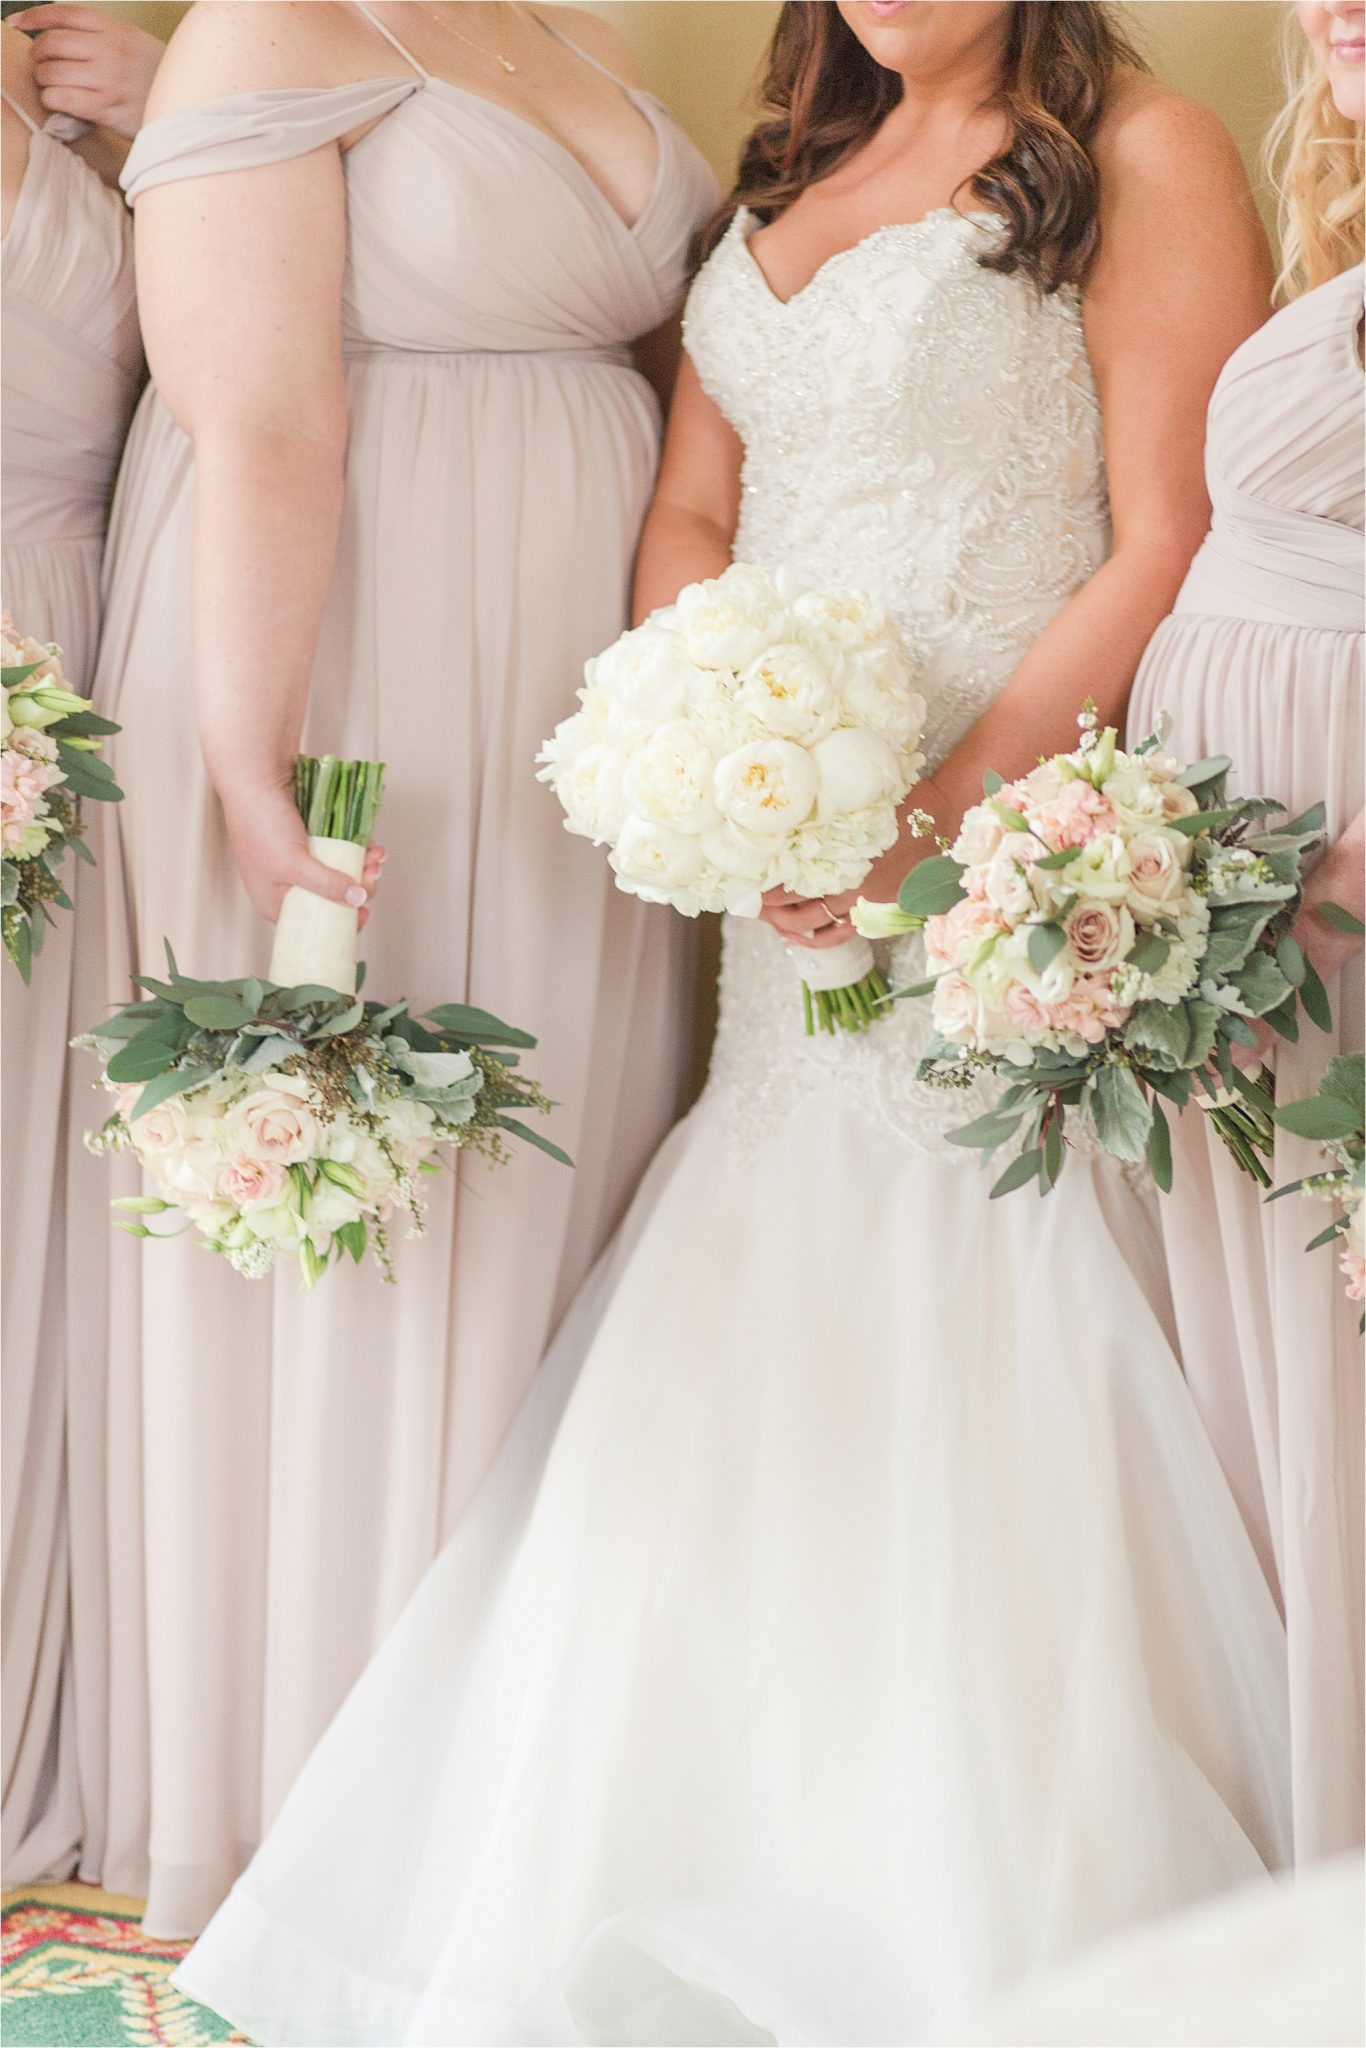 stunning lighting-bridal portraits-mermaid wedding dress-ezell house historic downtown-alabama wedding photographer-blush bridesmaid dresses-soft blushes-mermaid wedding dress-strapless bridal dress